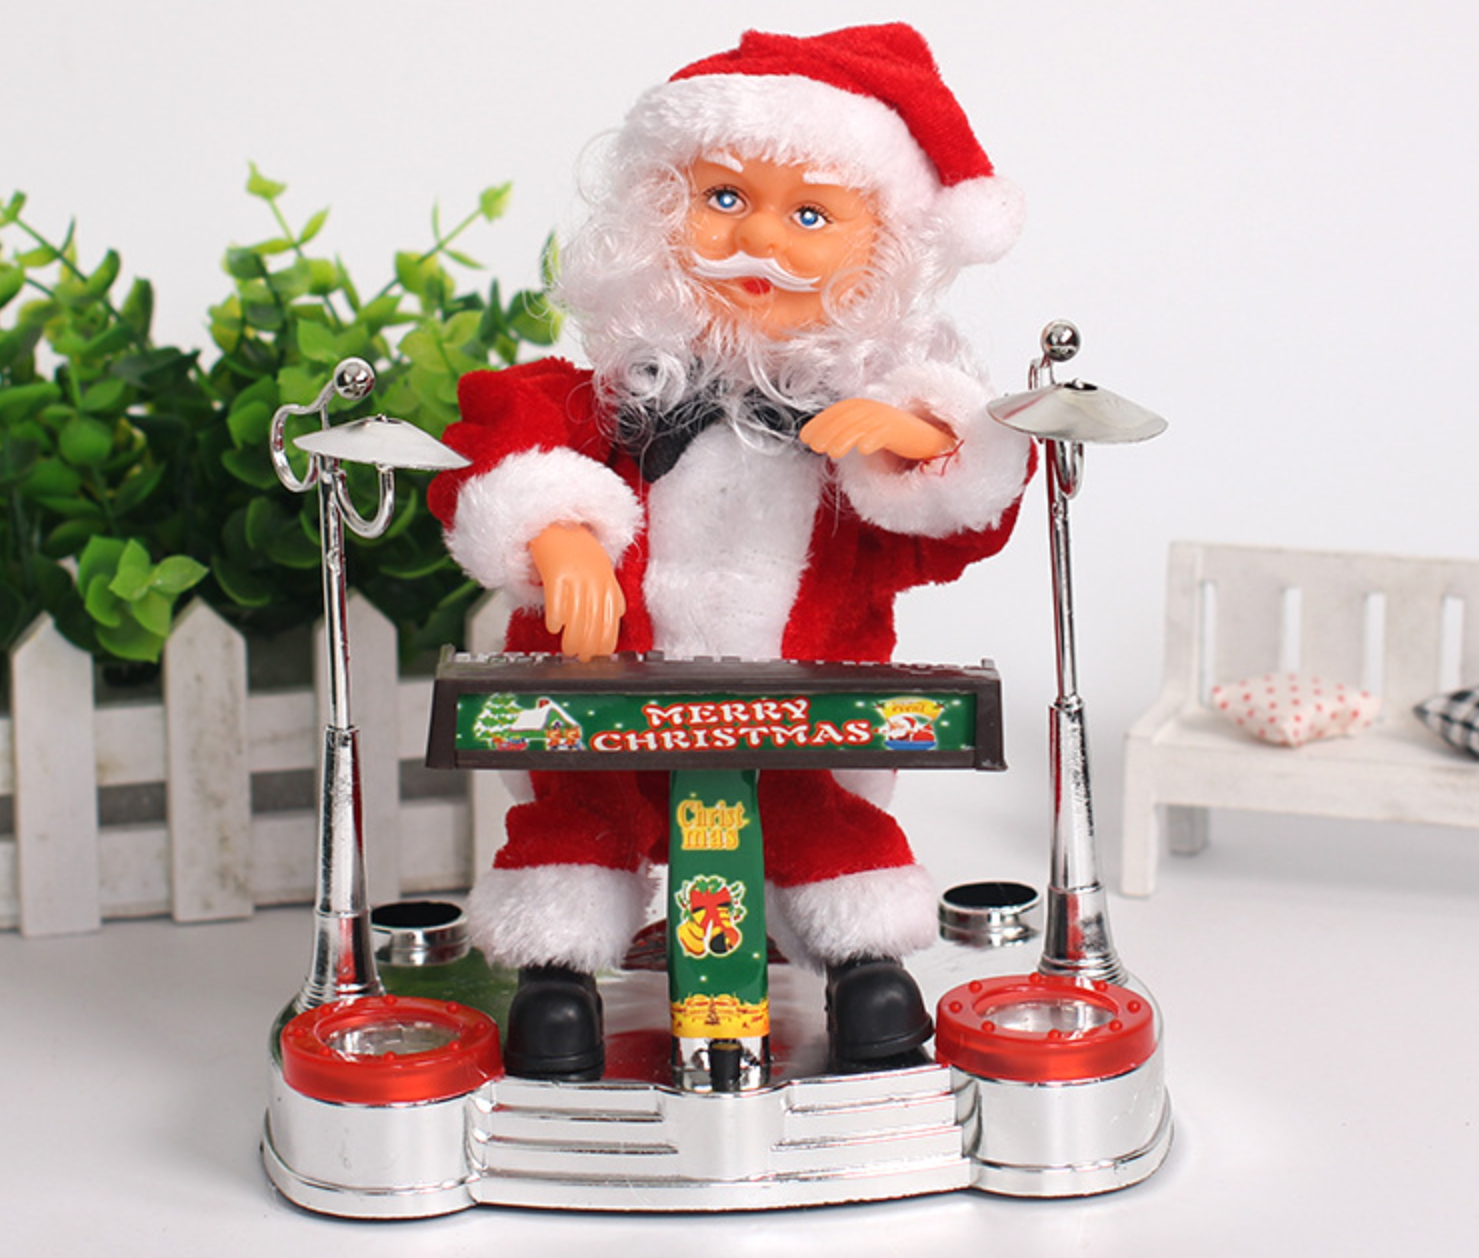 Wind Up Drummer Toy Christmas Santa Claus Mechanical Plastic Toy Christmas Gifts